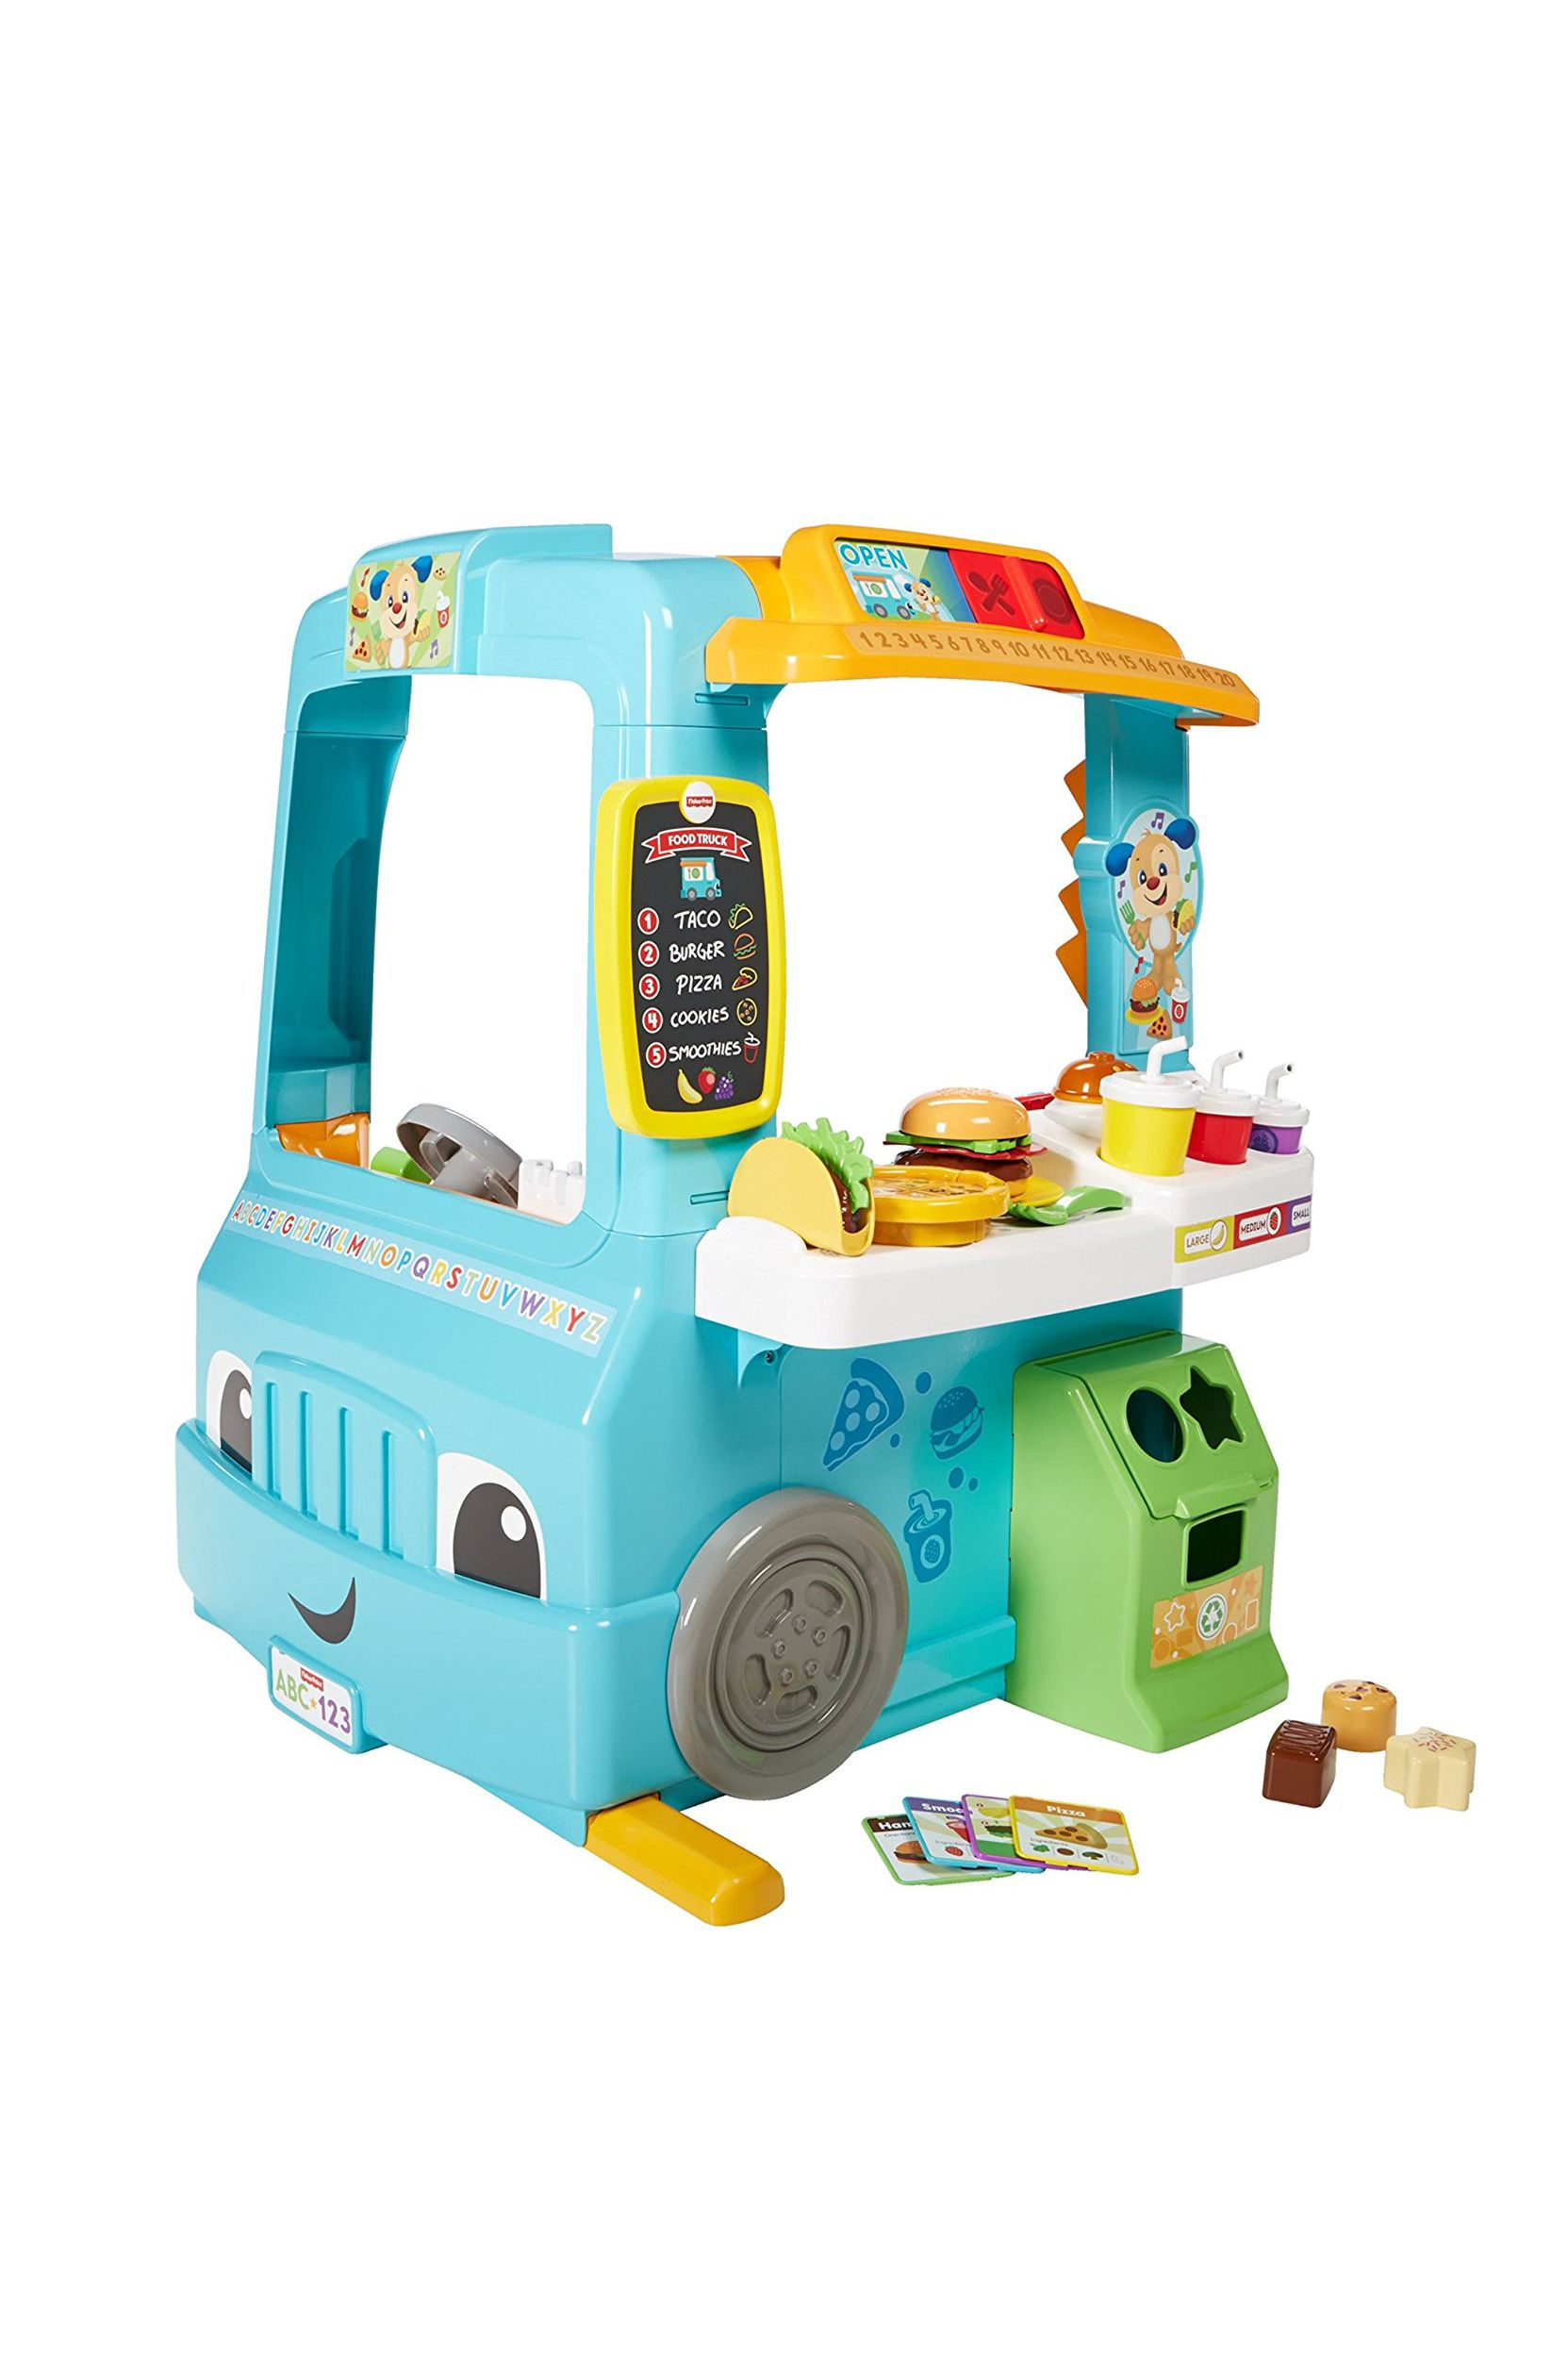 8 Best Toys for 2 Year Olds - Top Rated Toys for Two-Year-Old Boys ...